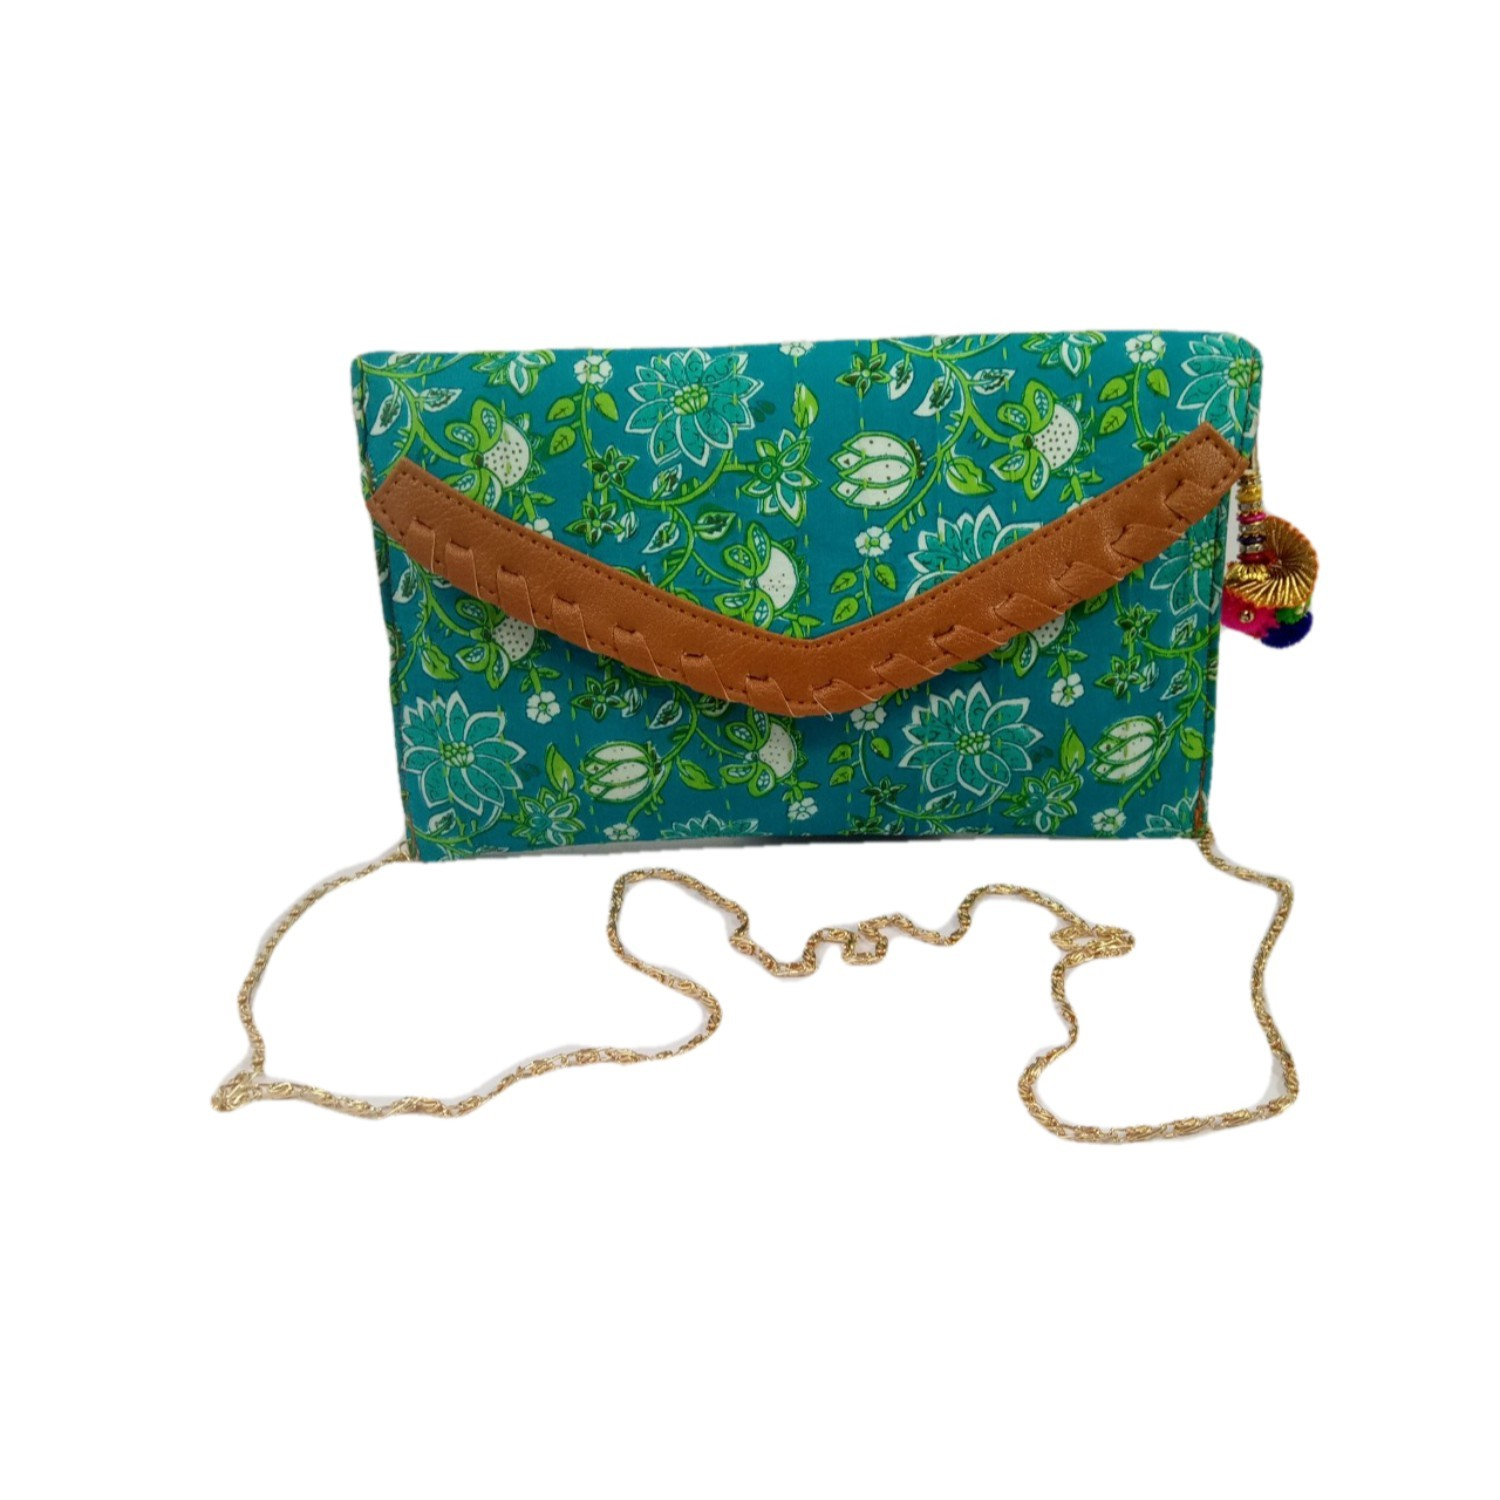 Handmade Excellent Green Genuine Clutch With Detachable Chain by Women Self Help Groups of Rajasthan